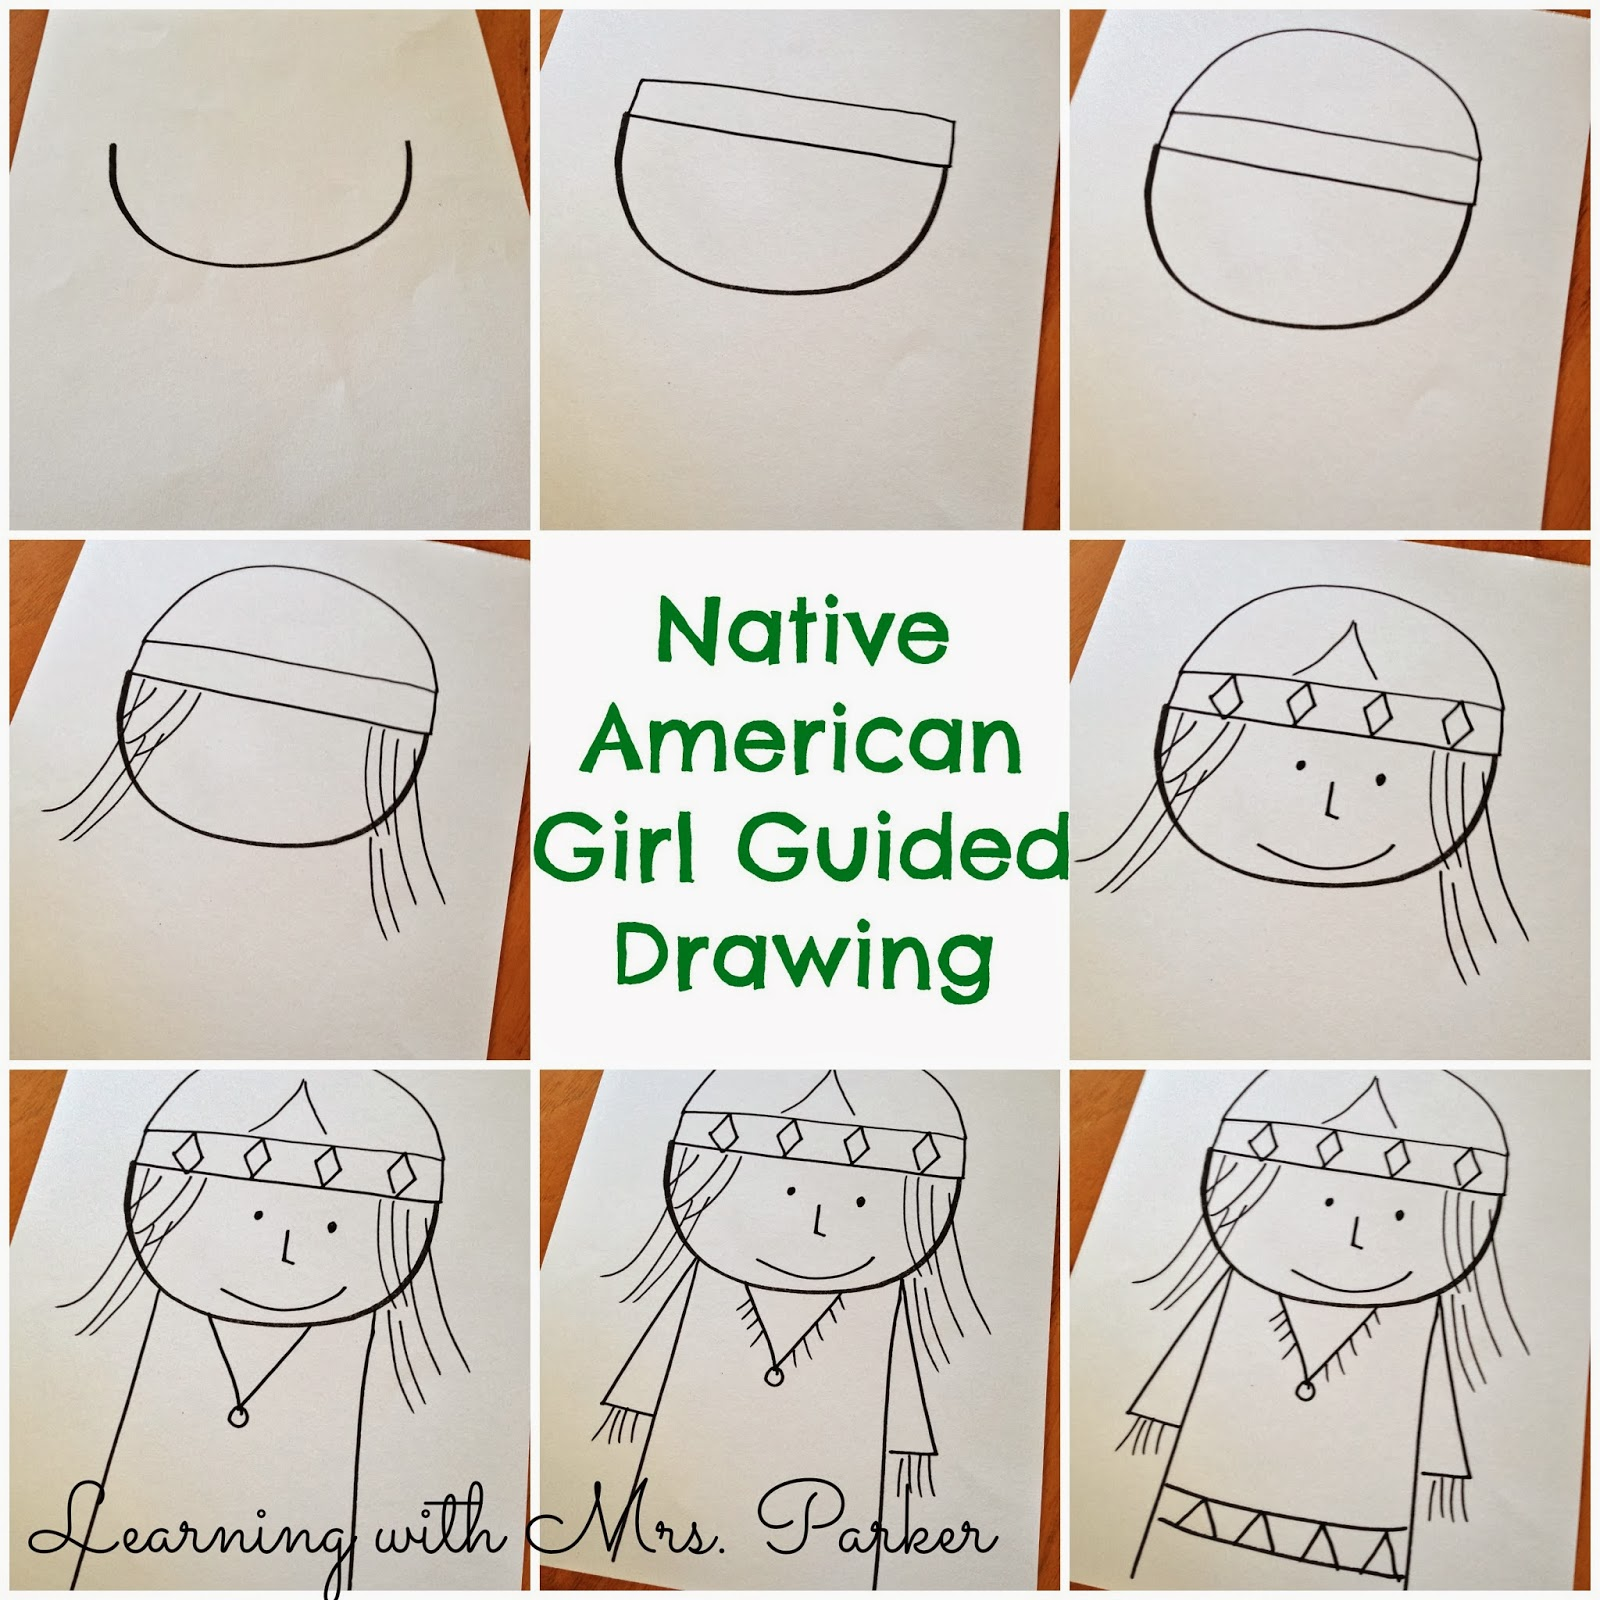 guided drawings of pilgrims and native americans learning with